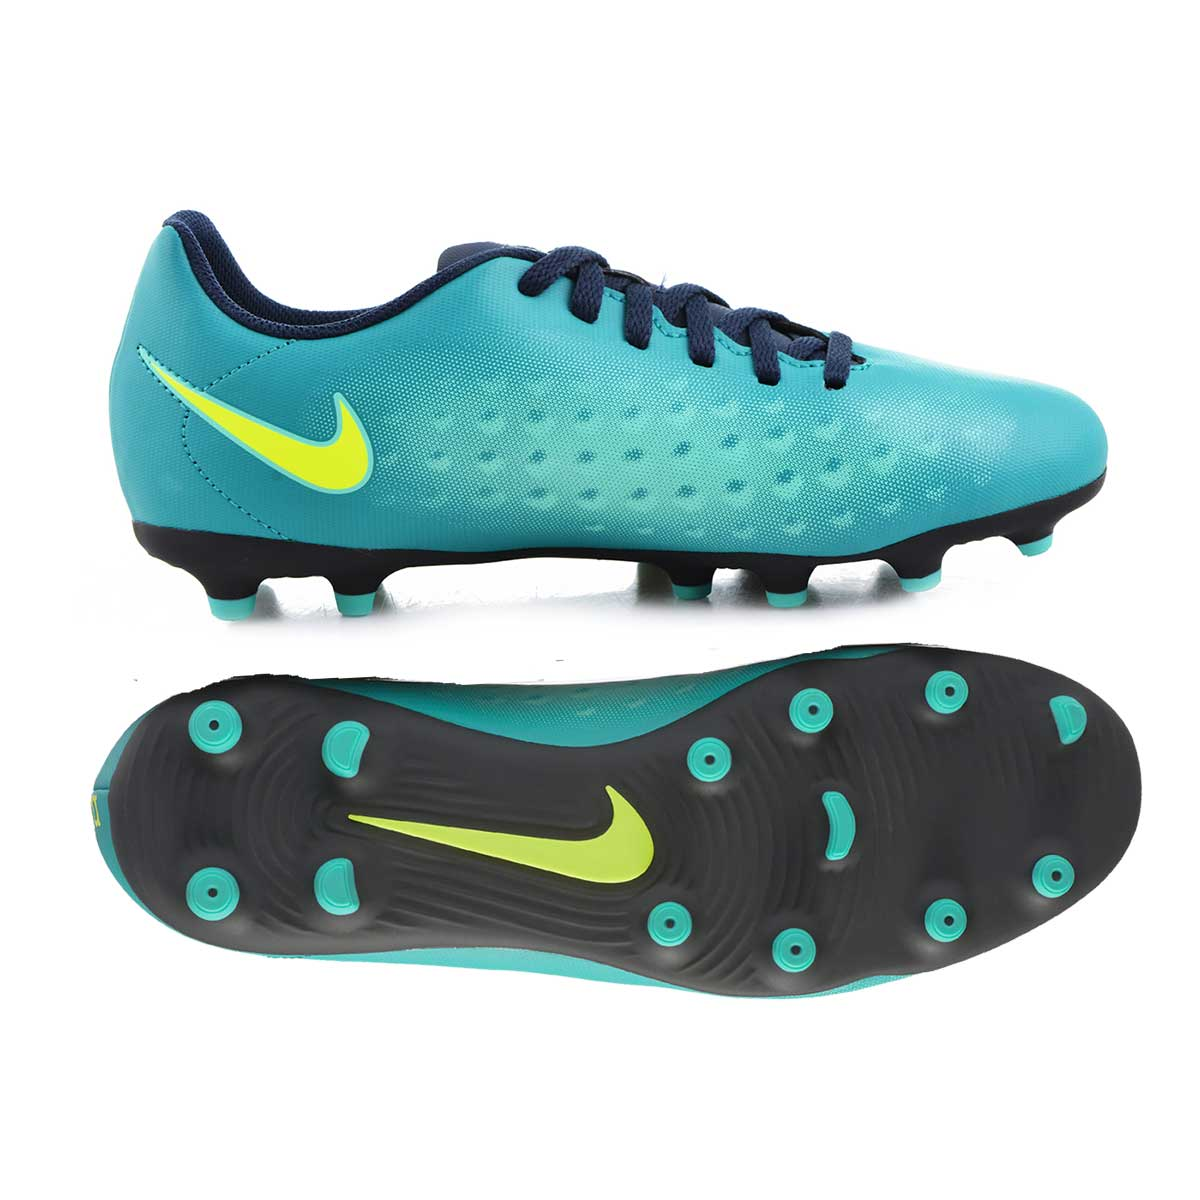 0cef6eb3dfc87 Buy Nike Magista Ola II FG Football Shoes (RioTeal) Online India